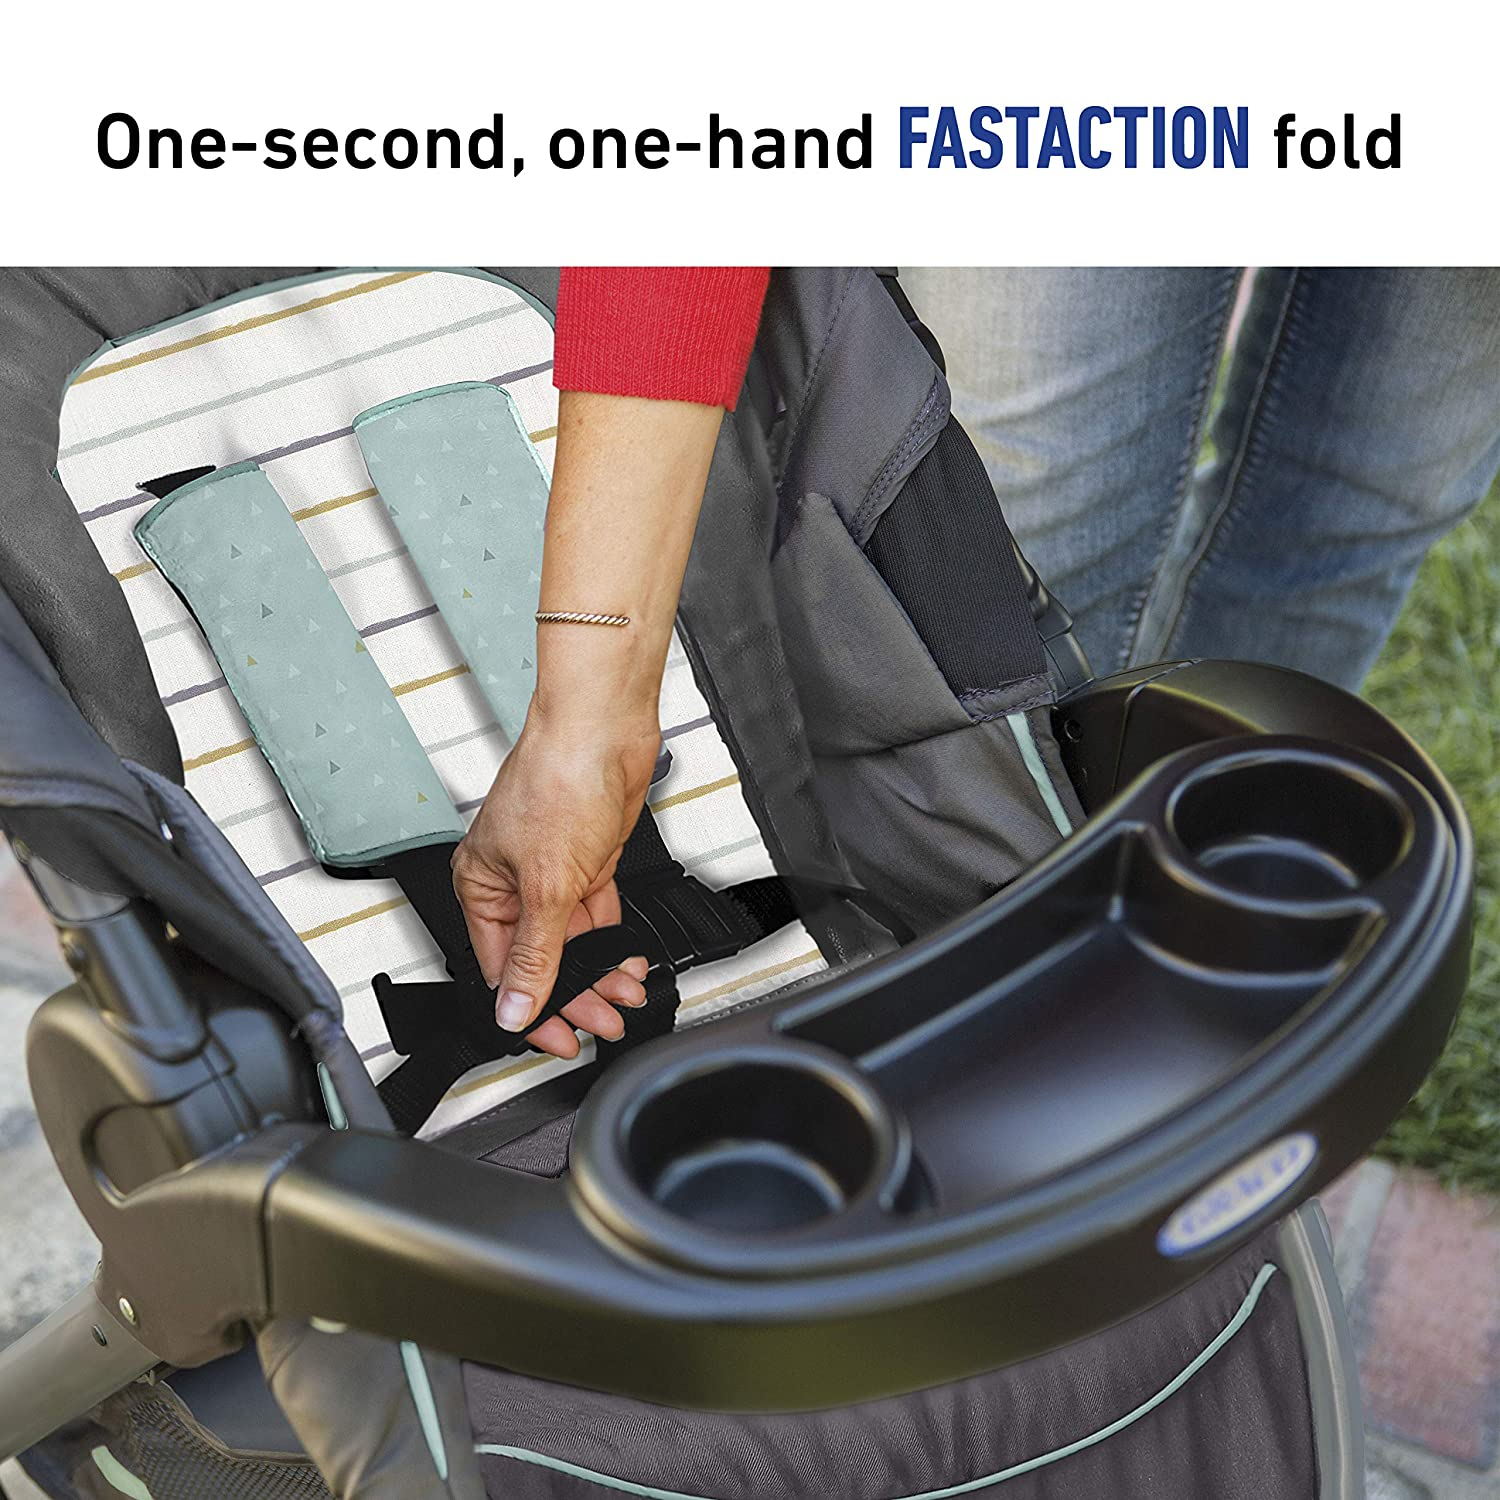 Amazon.com: Graco FastAction Cochecito plegable con sistema ...